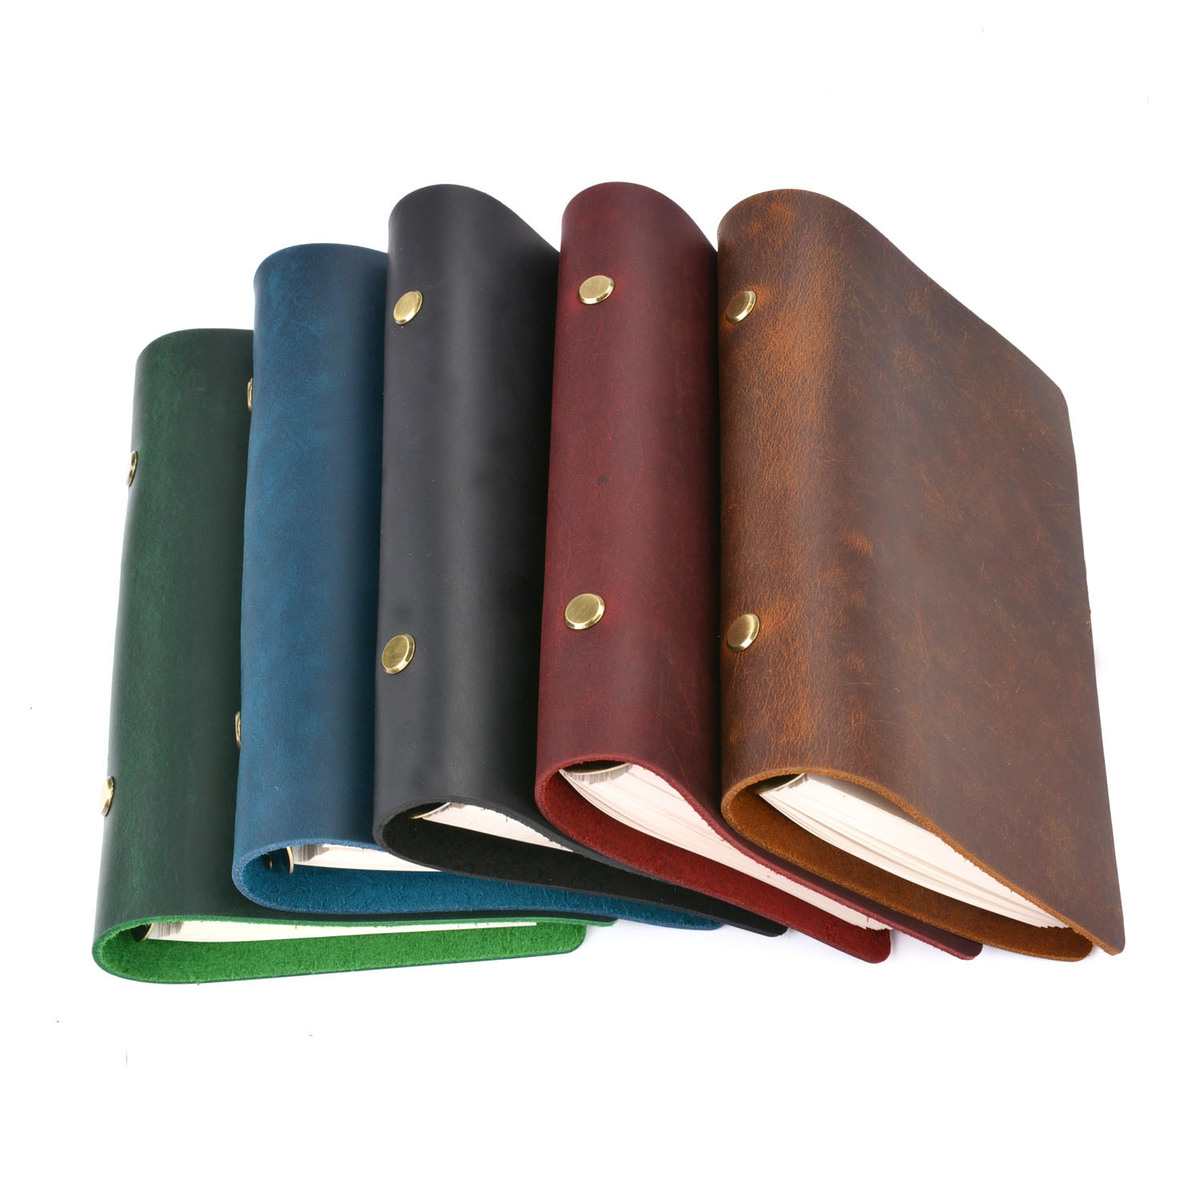 Hot Sale Classic Business Notebook A6 Genuine Leather Cover Loose Leaf Notebook Diary Travel Journal Sketchbook Planner